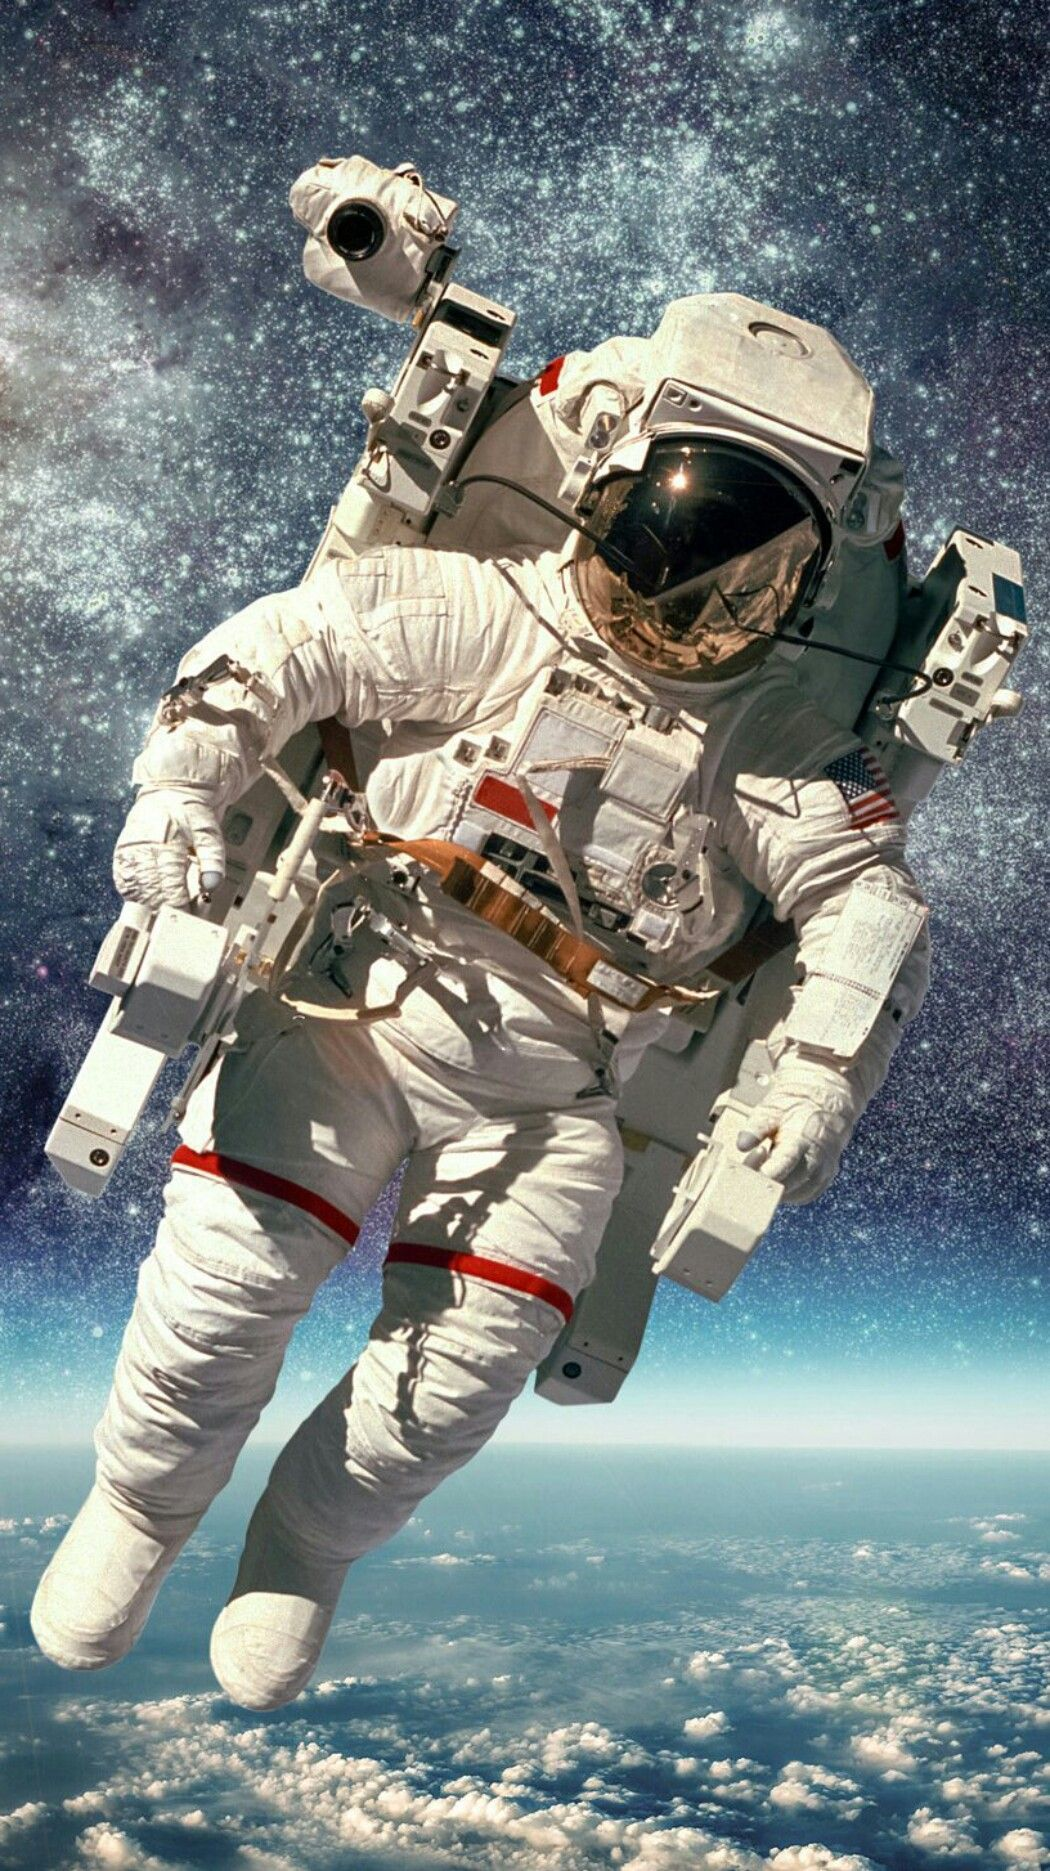 Best Free Astronaut Phone Wallpapers Backgrounds Cool Space And Astronomy Space Nasa Astronaut Wallpaper